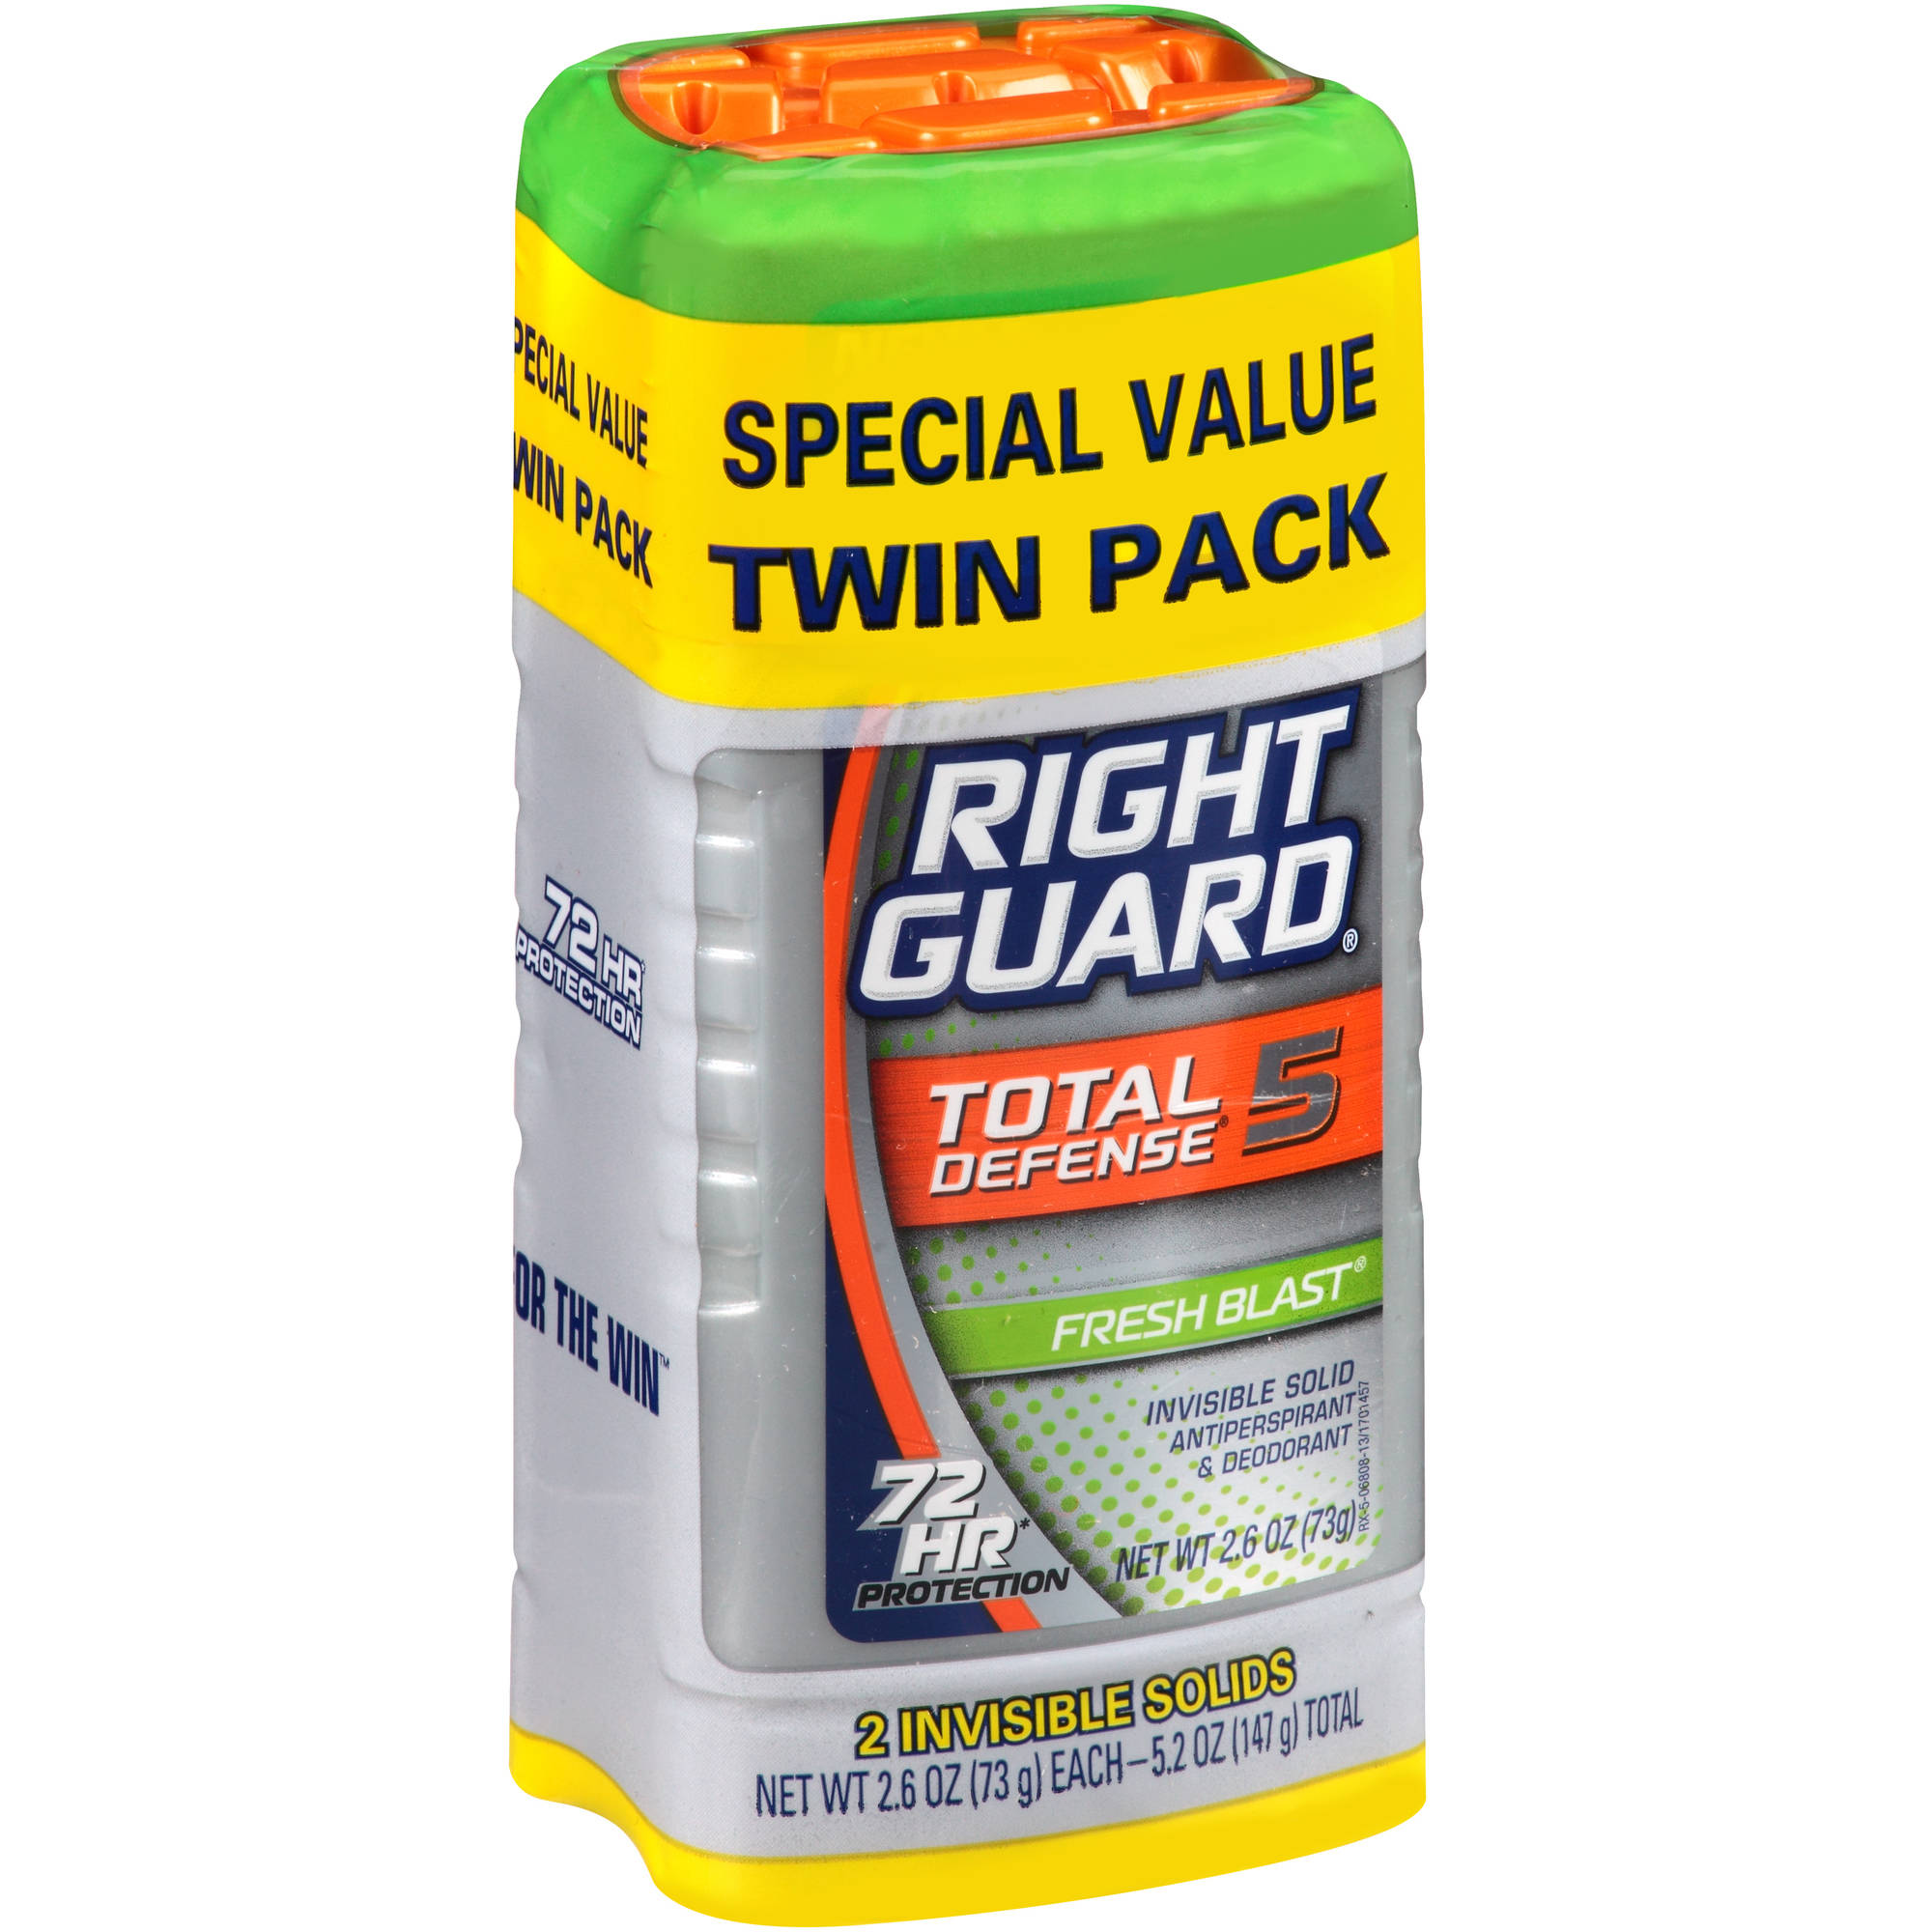 Right Guard Powder Stripe Anti-Perspirant Deodorant, 5.2 oz